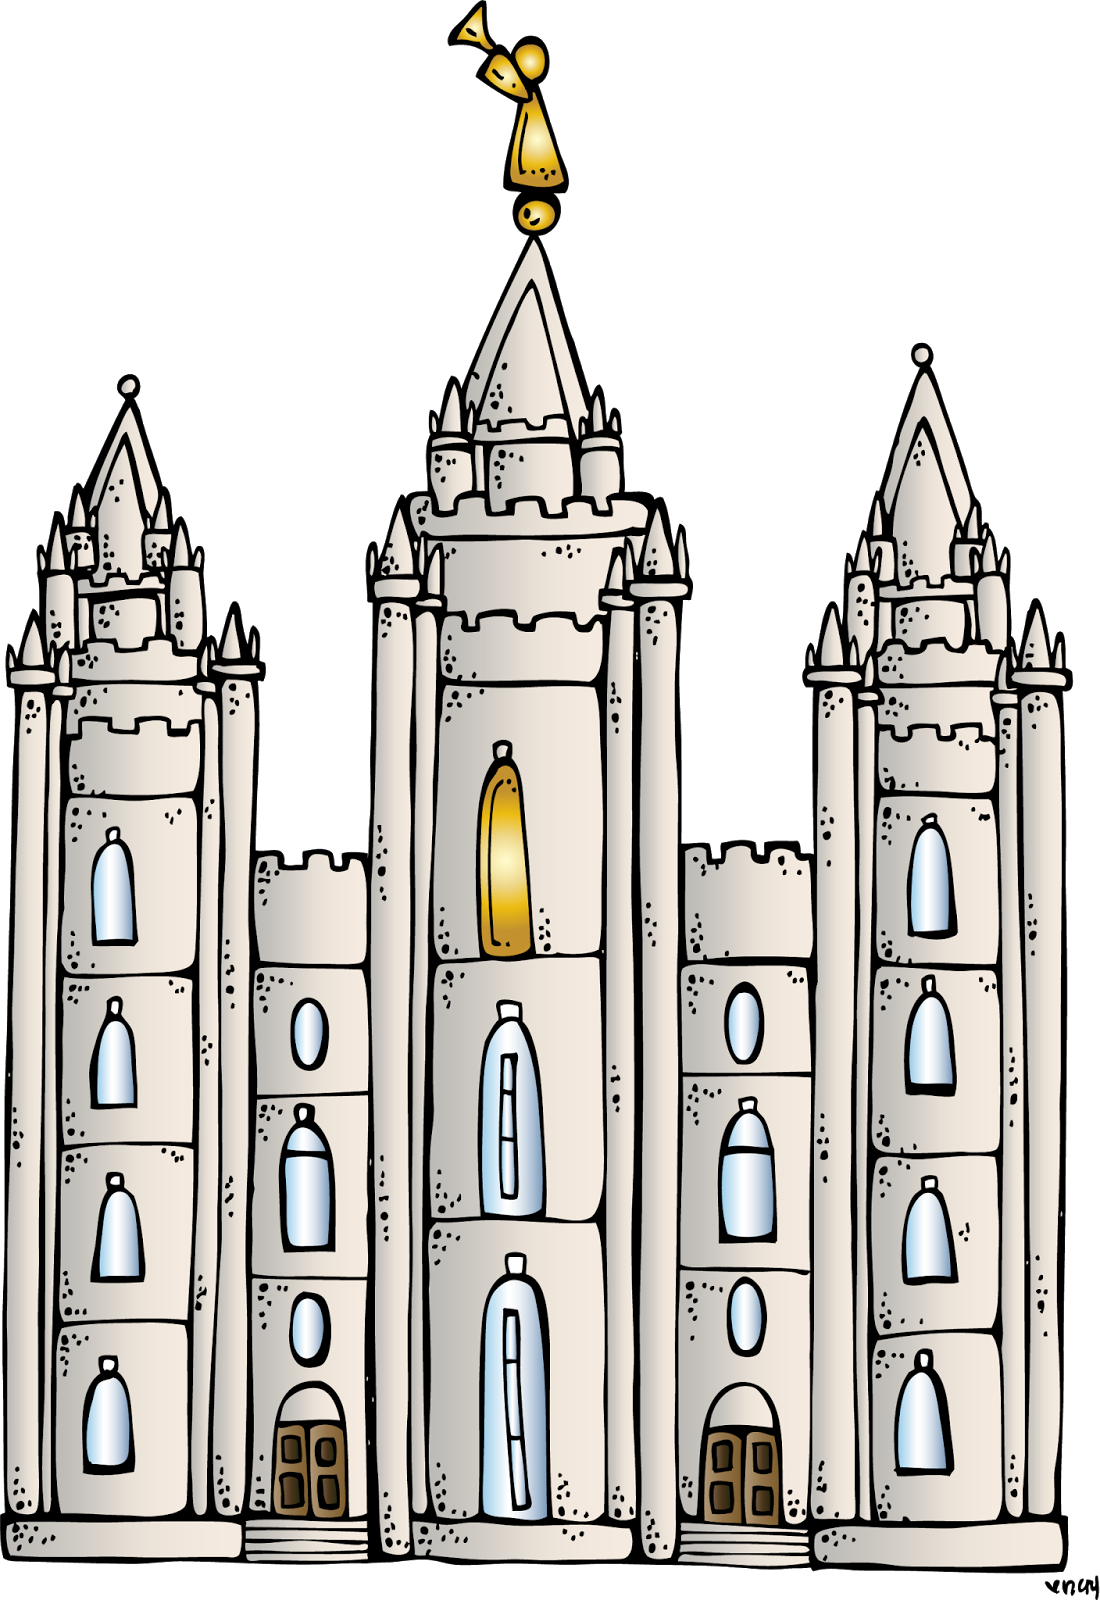 lds temple silhouette clip art at getdrawings com free for rh getdrawings com lds clipart temple marriage lds clipart temple marriage